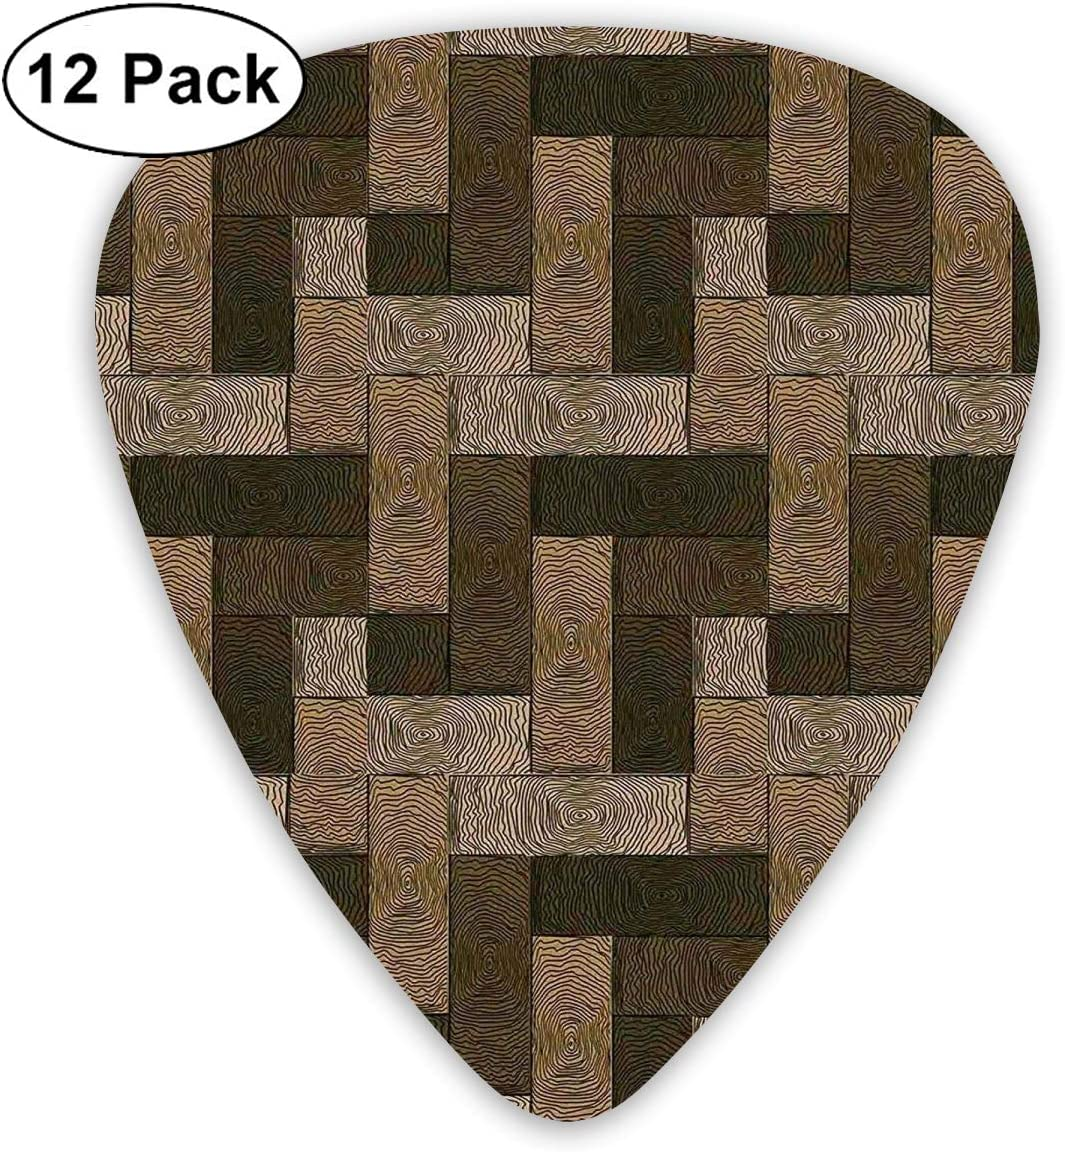 Guitar Picks12pcs Plectrum (0.46mm-0.96mm), Parquet Pattern In Wooden Style Geometric Design In Nature Inspired Art,For Your Guitar or Ukulele